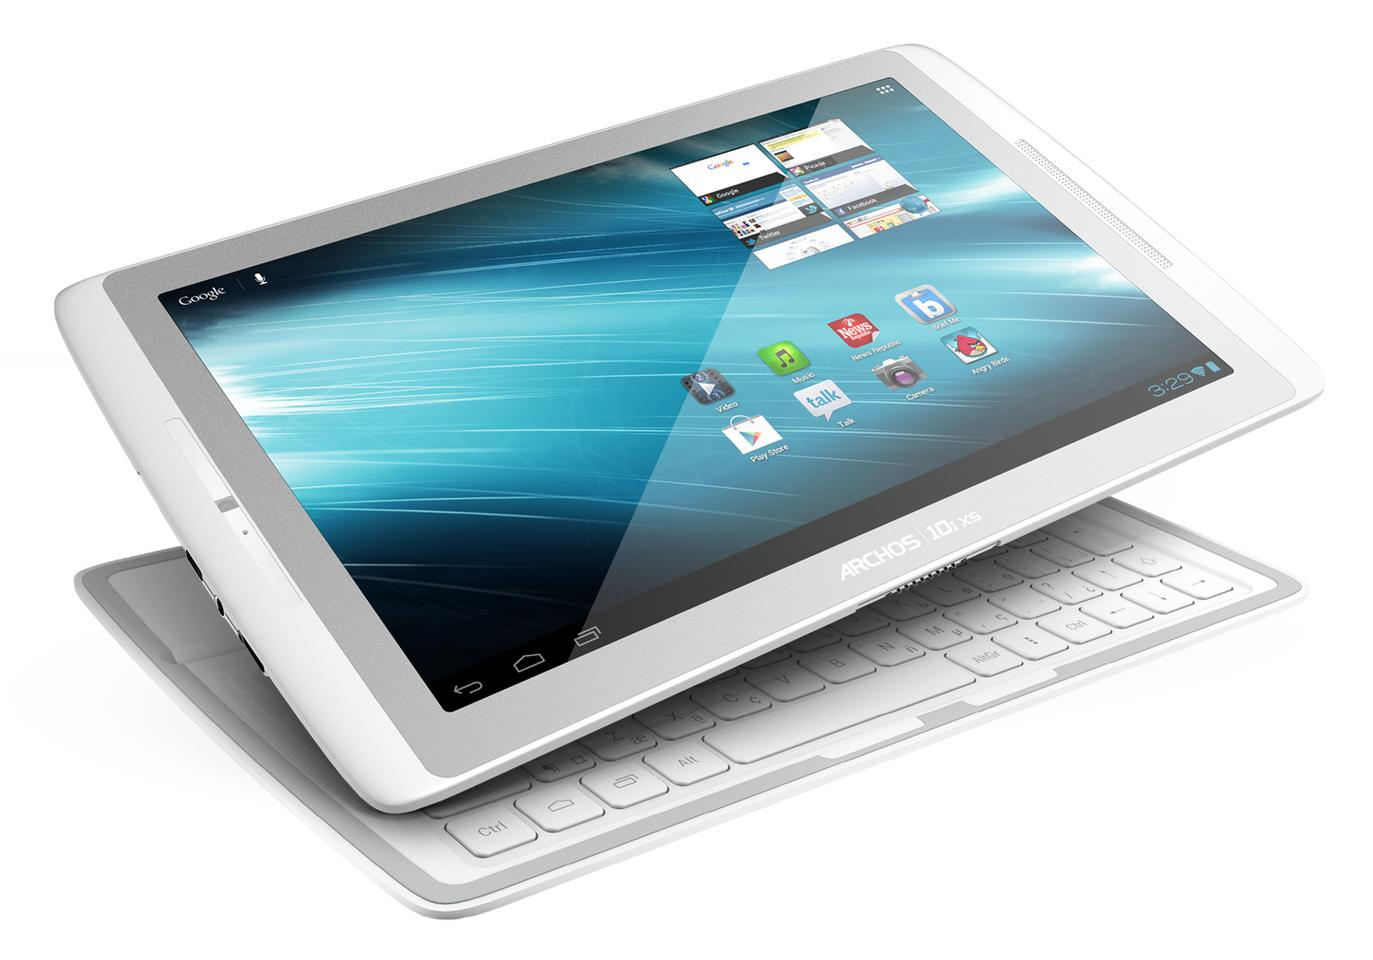 The 10-inch budget Android tablet comes supplied with its own combined cover, dock, stand and keyboard in the shape of the very thin Coverboard